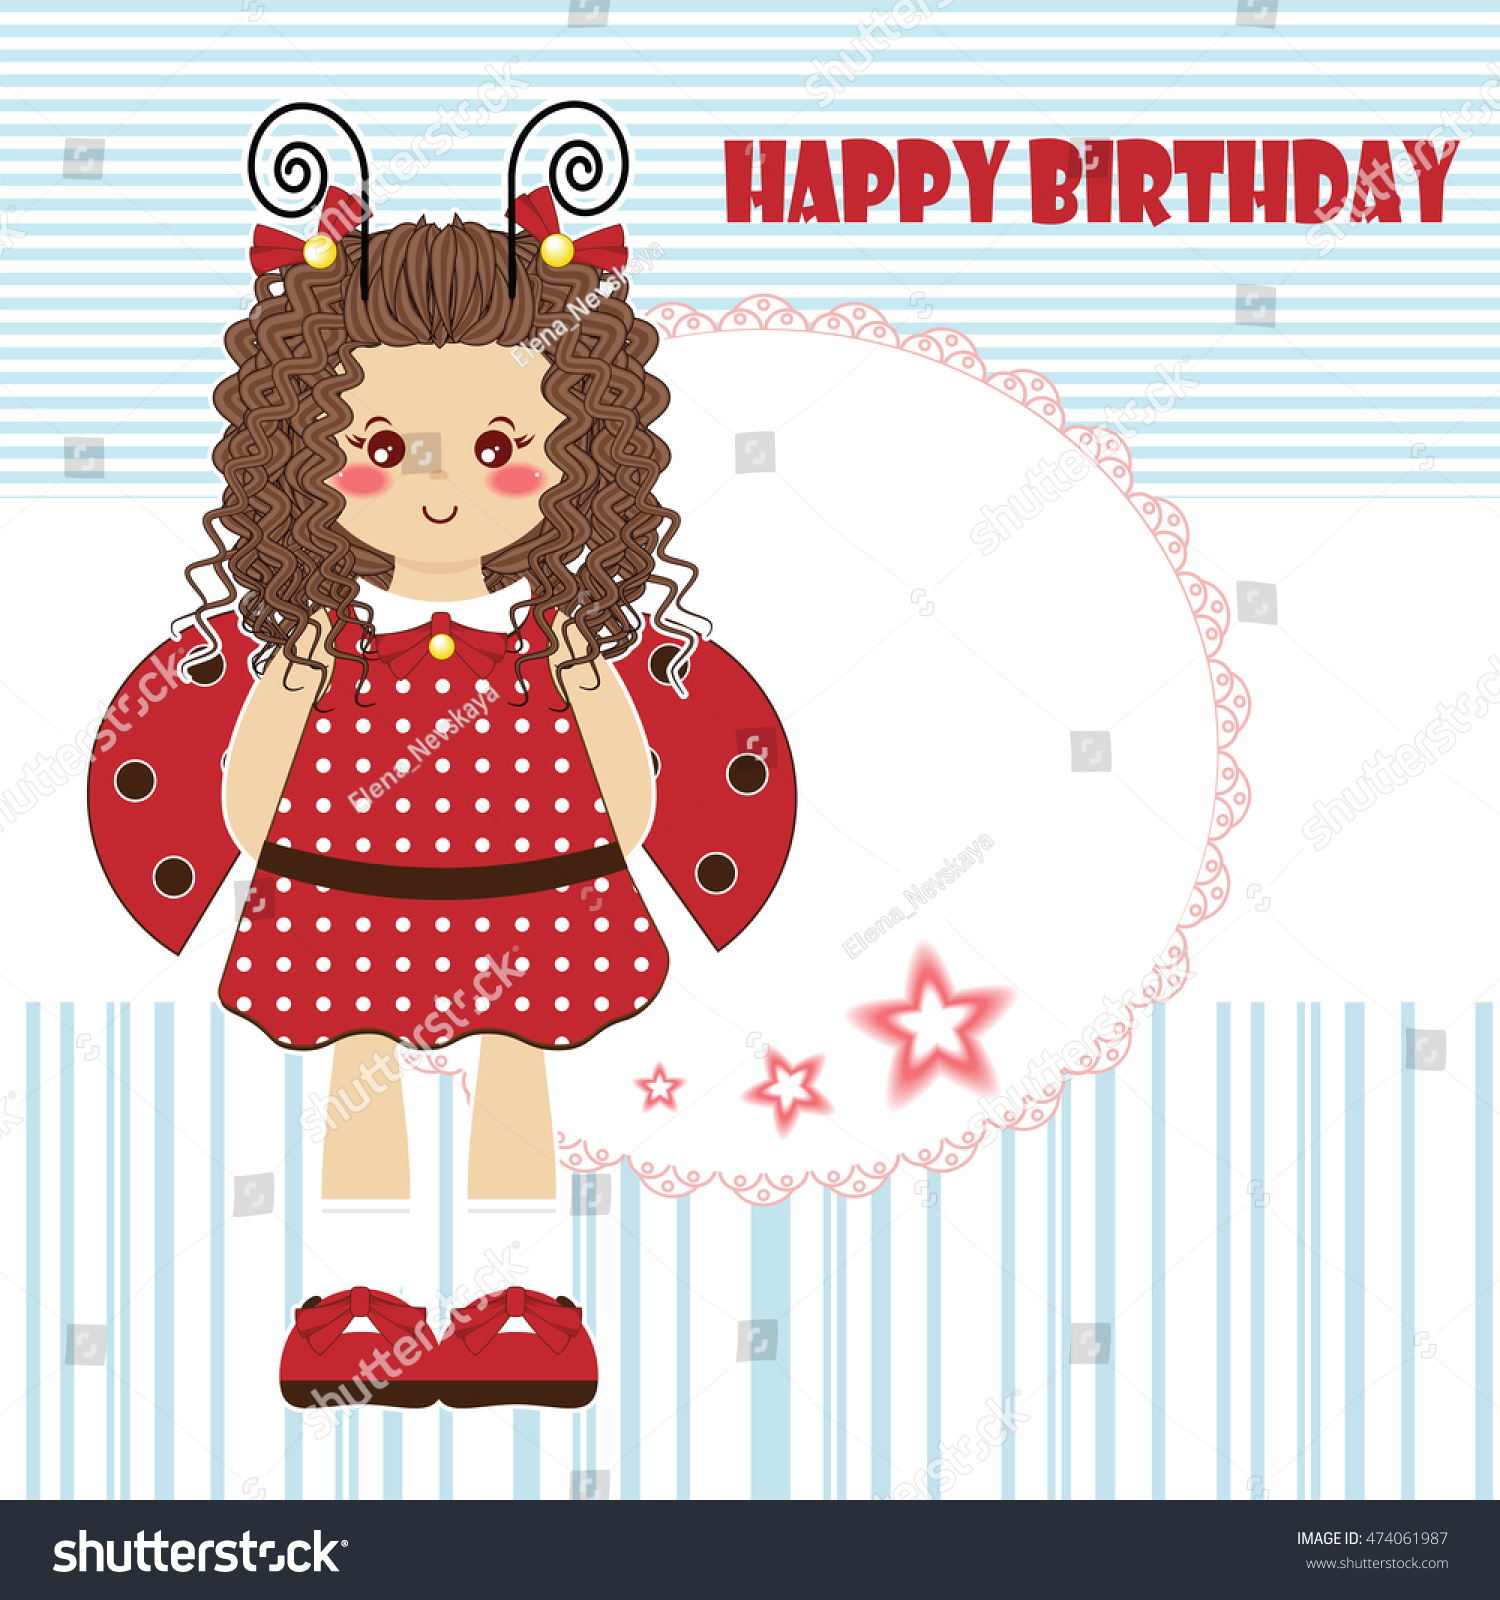 Happy birthday greeting card kawaii little stock vector 474061987 happy birthday greeting card kawaii little girl with curly hair and ladybug wings tender stopboris Images